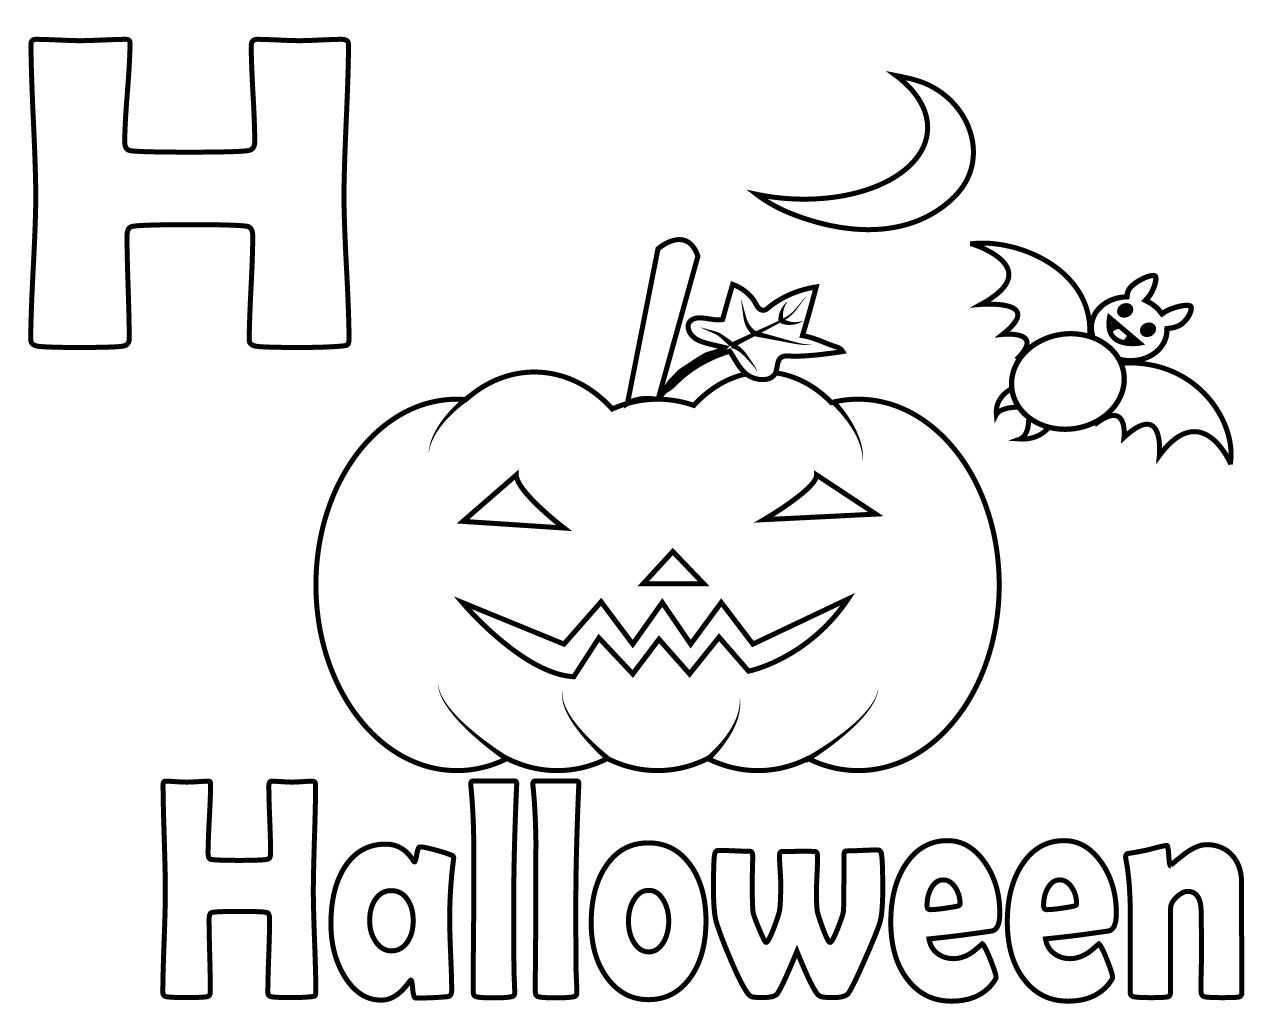 Free Printable Letter H Coloring Pages | CareersPlay ...